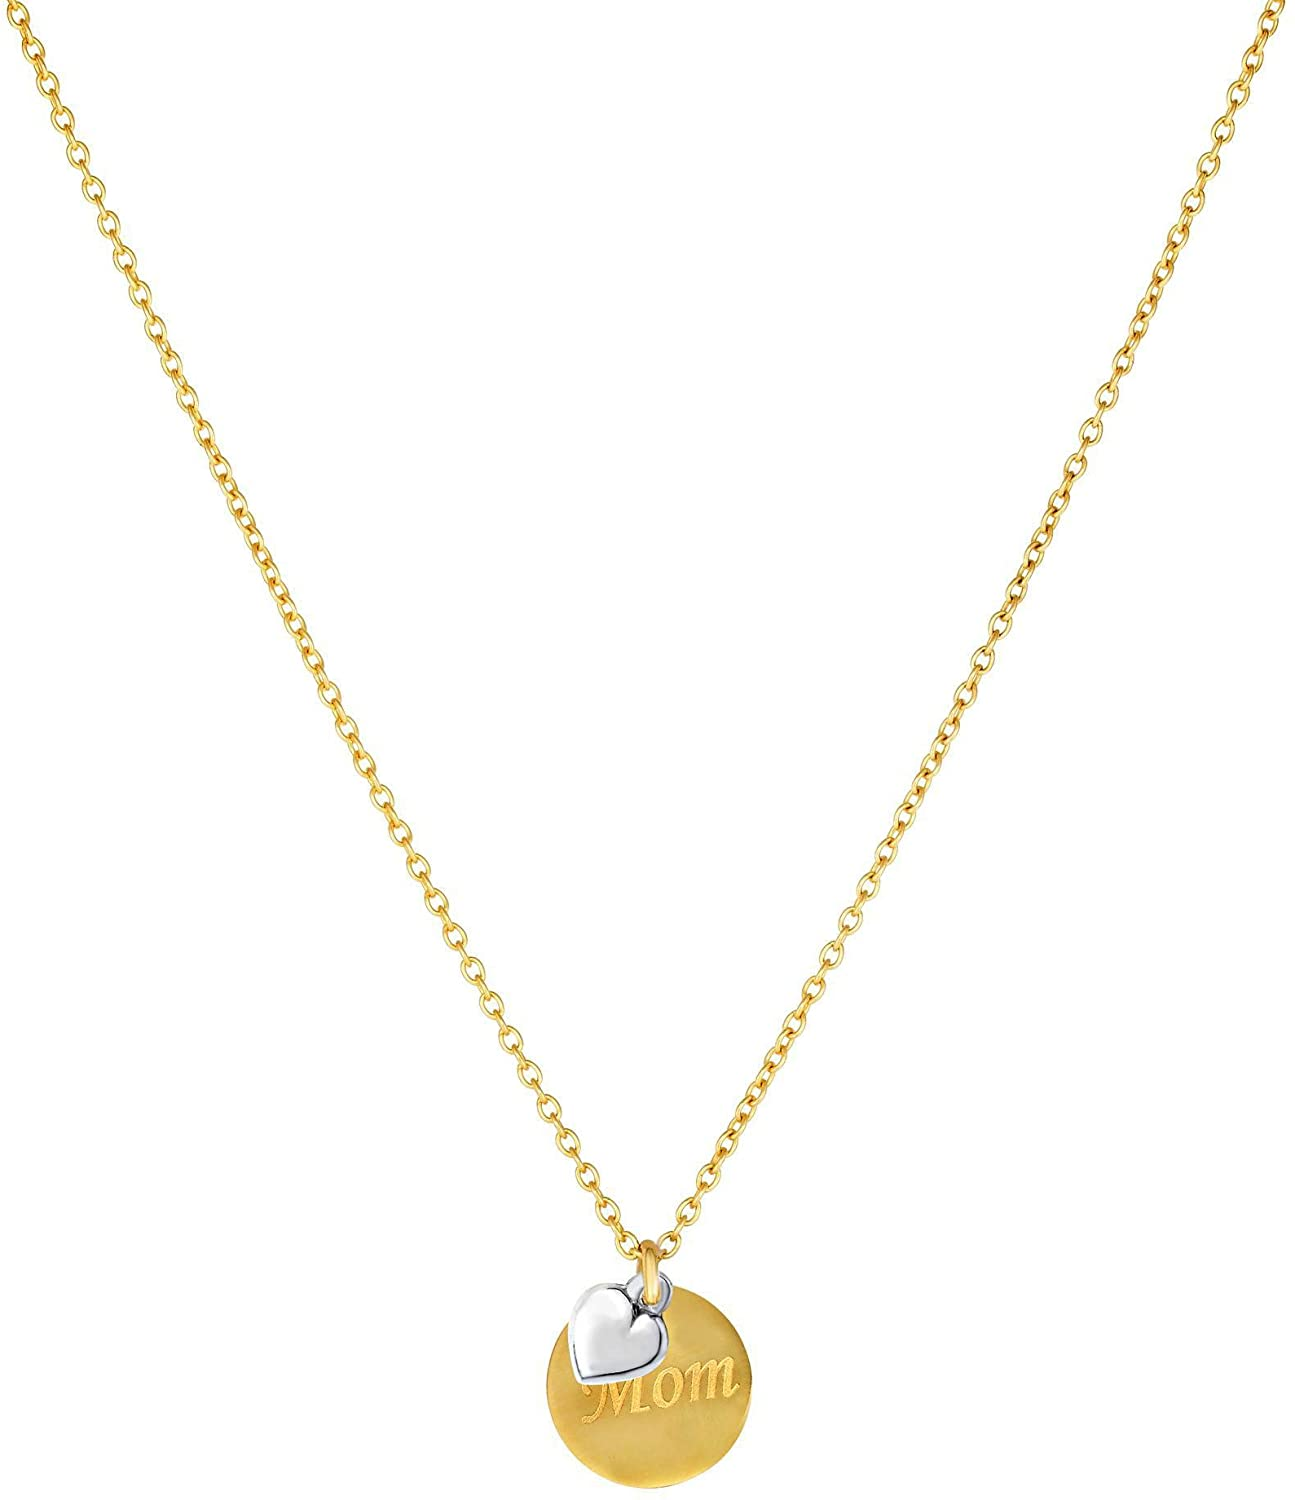 14k Yellow Gold MOM Round Disc Pendant Chain Necklace, 18